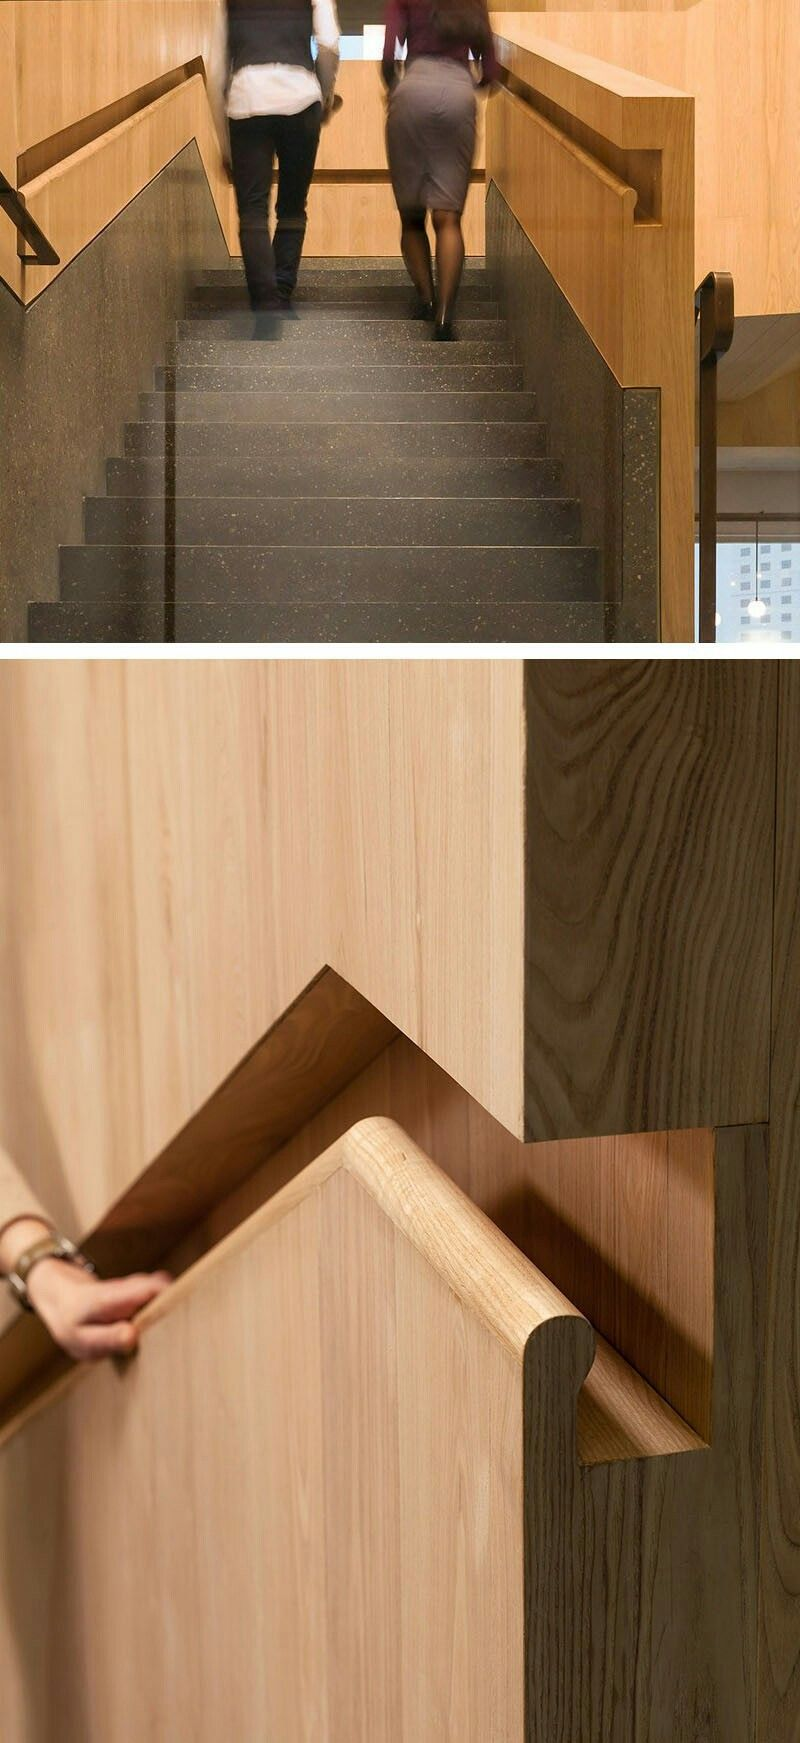 Built In Handrail Wood Marble Any Material Stairs Design Handrail Design Staircase Design